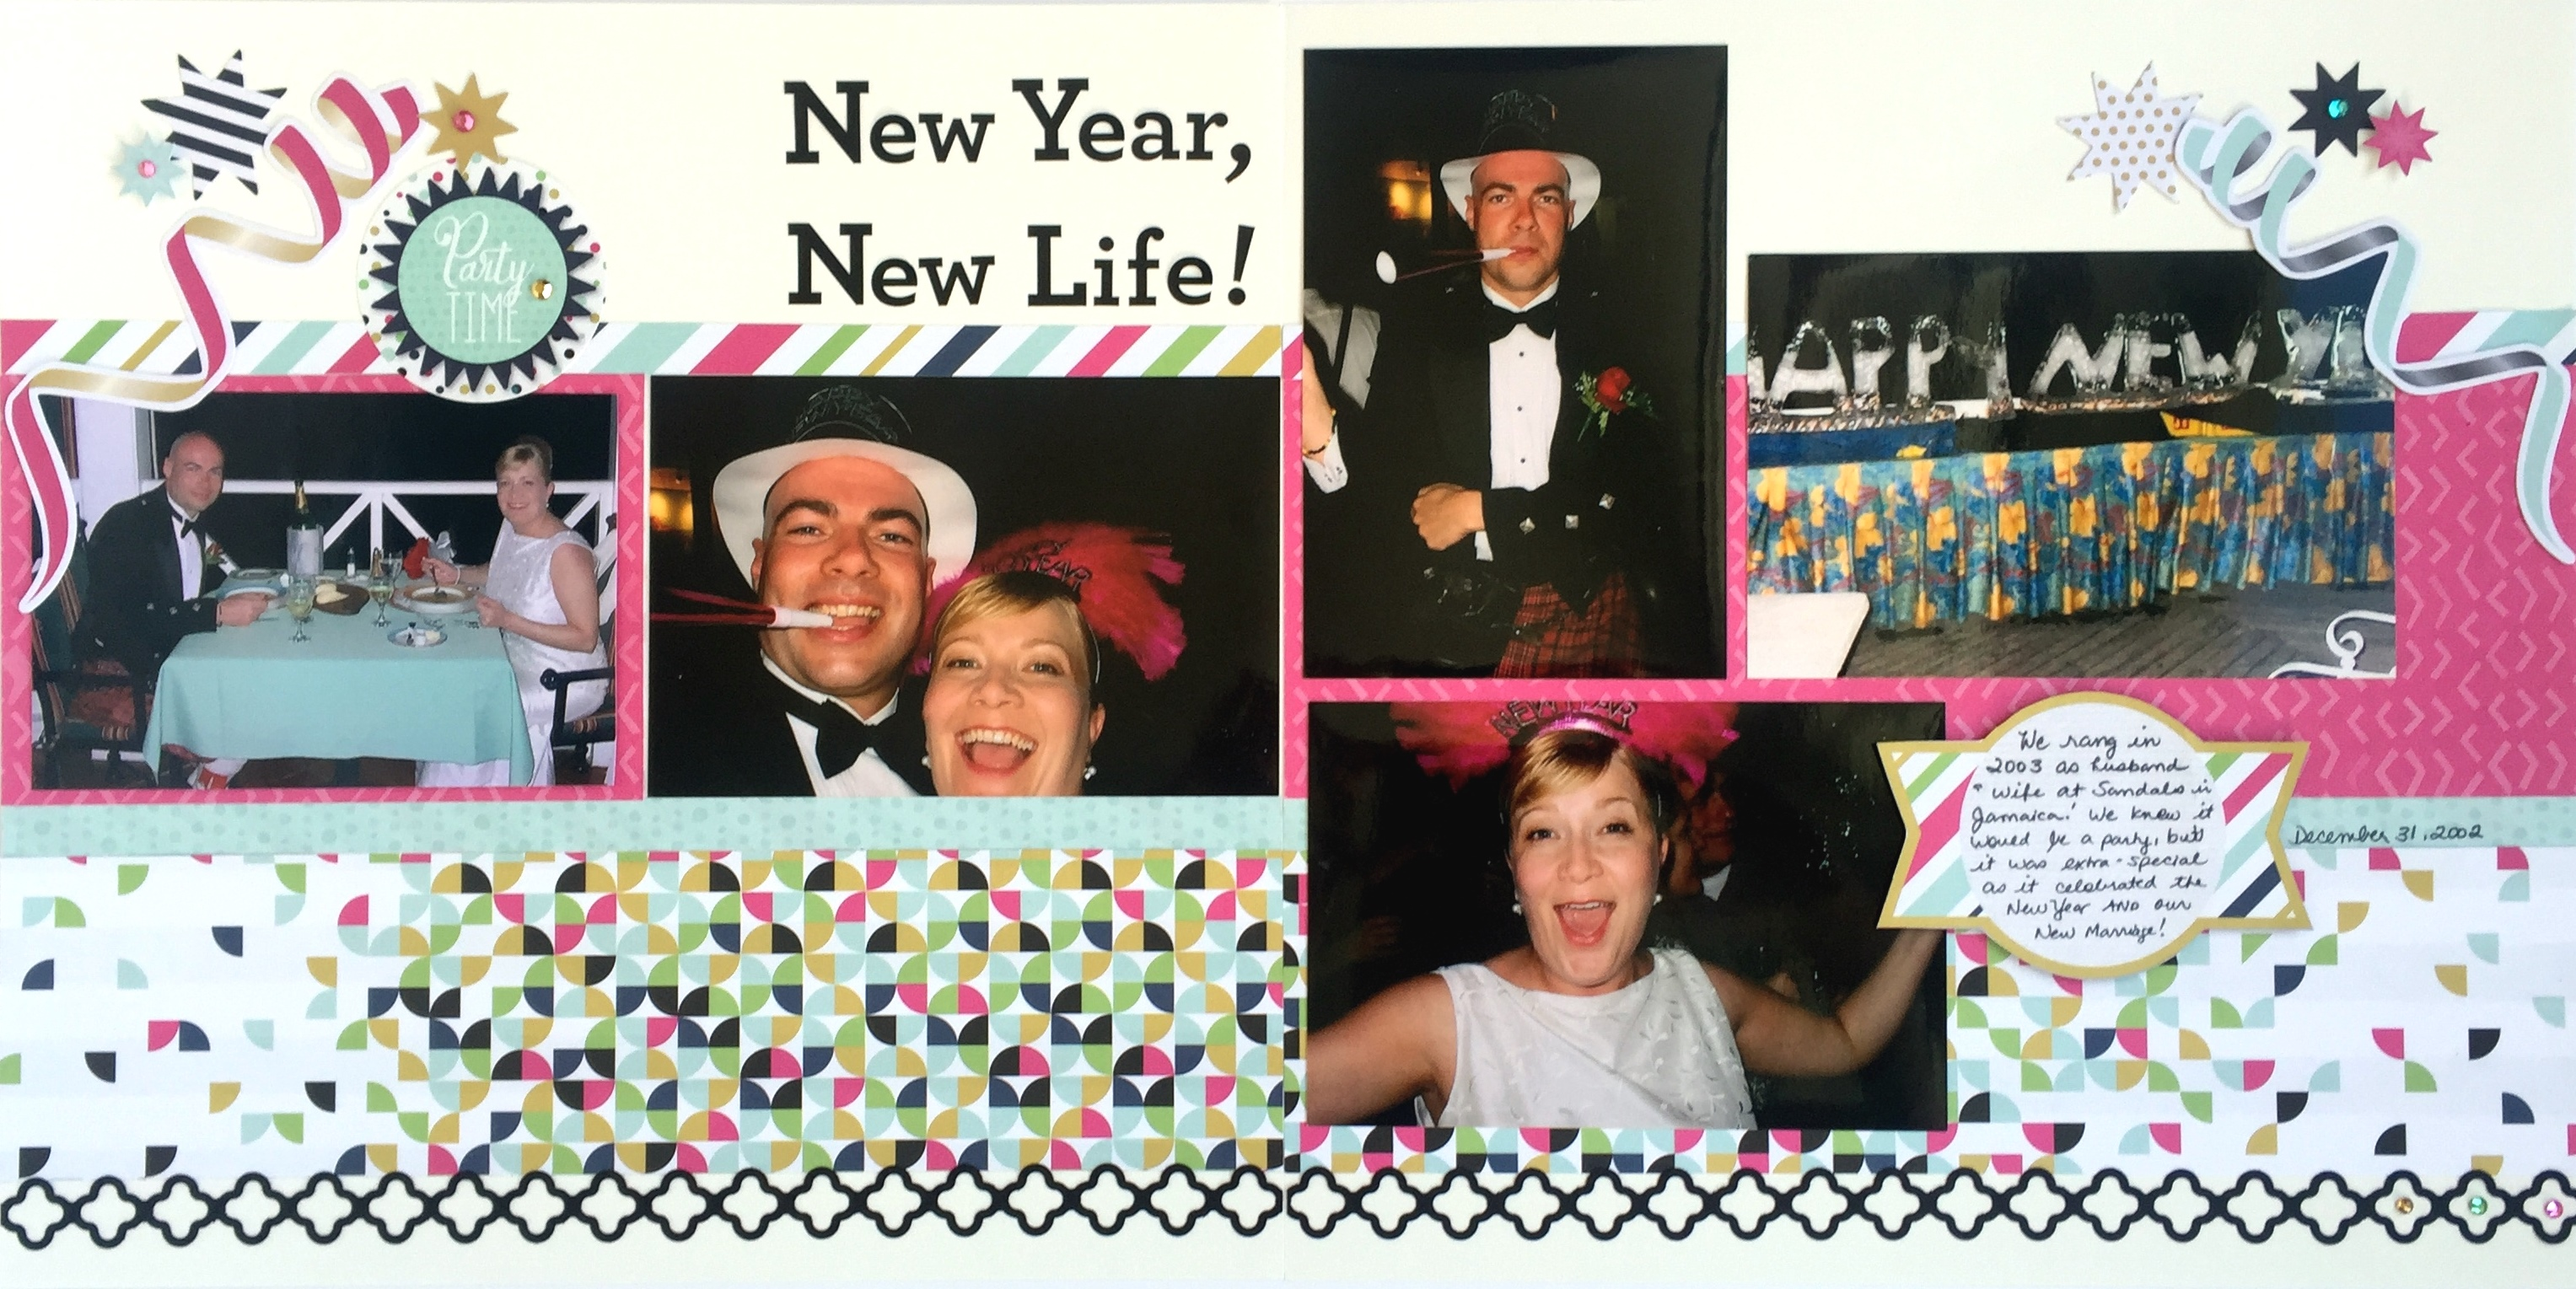 How to make scrapbook for husband - Again Simple Strips Of Paper Are Easy To Apply And Provide Cohesion Across The Two Pages Of The Layout To Make This Layout